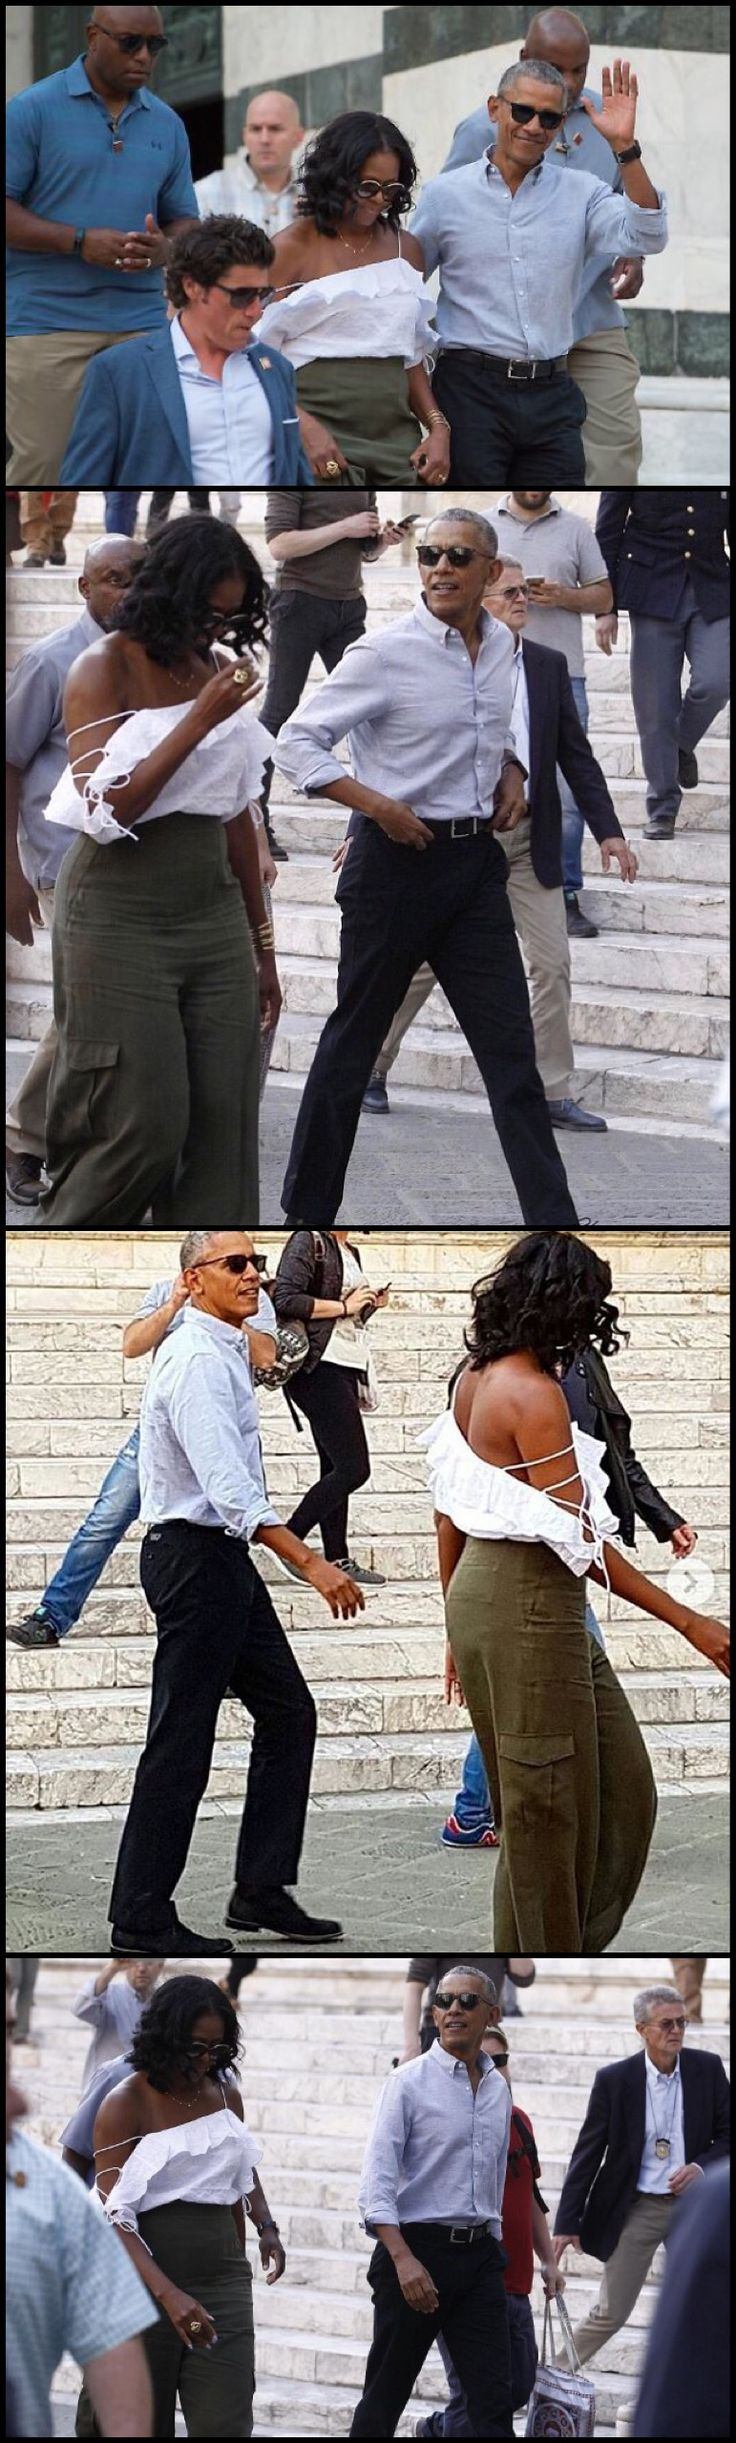 Siena Tuscany Italy 5/22/17 #TheObamas arrived in Italy escorted by six fighter jets on Friday May 19, 2017 LOVE the OBAMAS So glad I am smarted enough to have appreciate them from the first time they hit the scene....I Want That Top